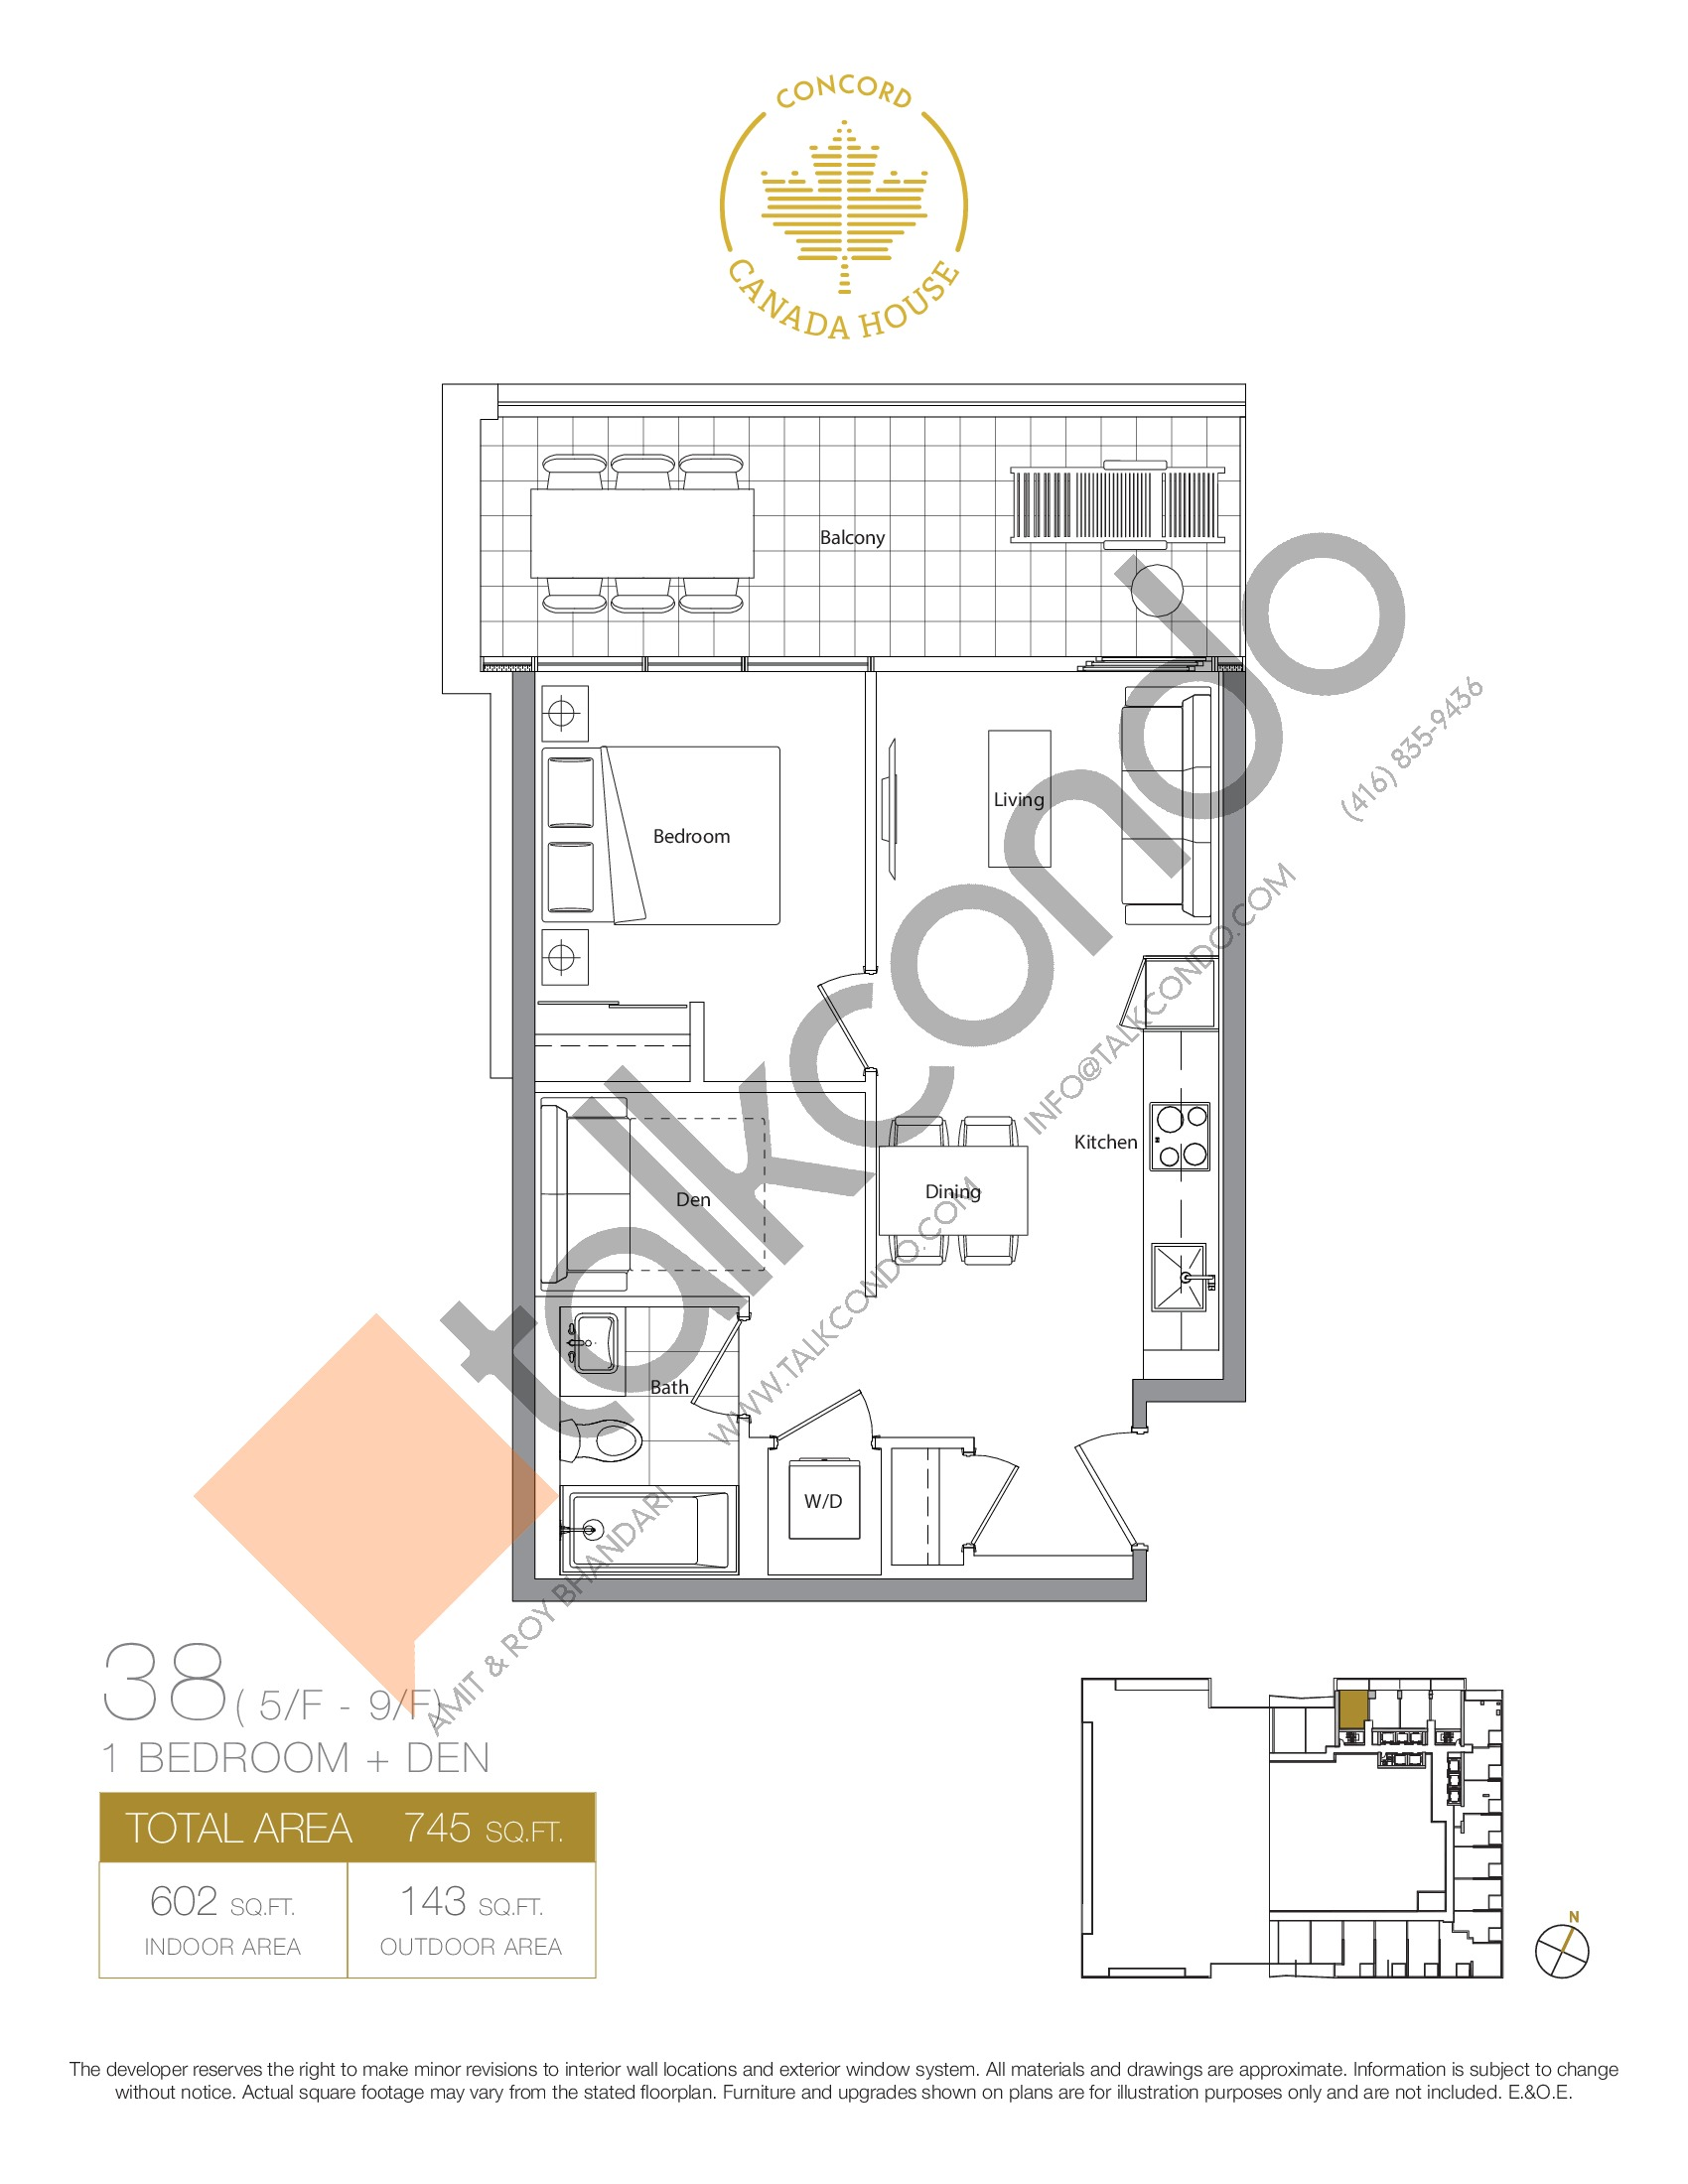 38 - East Tower Floor Plan at Concord Canada House Condos - 602 sq.ft